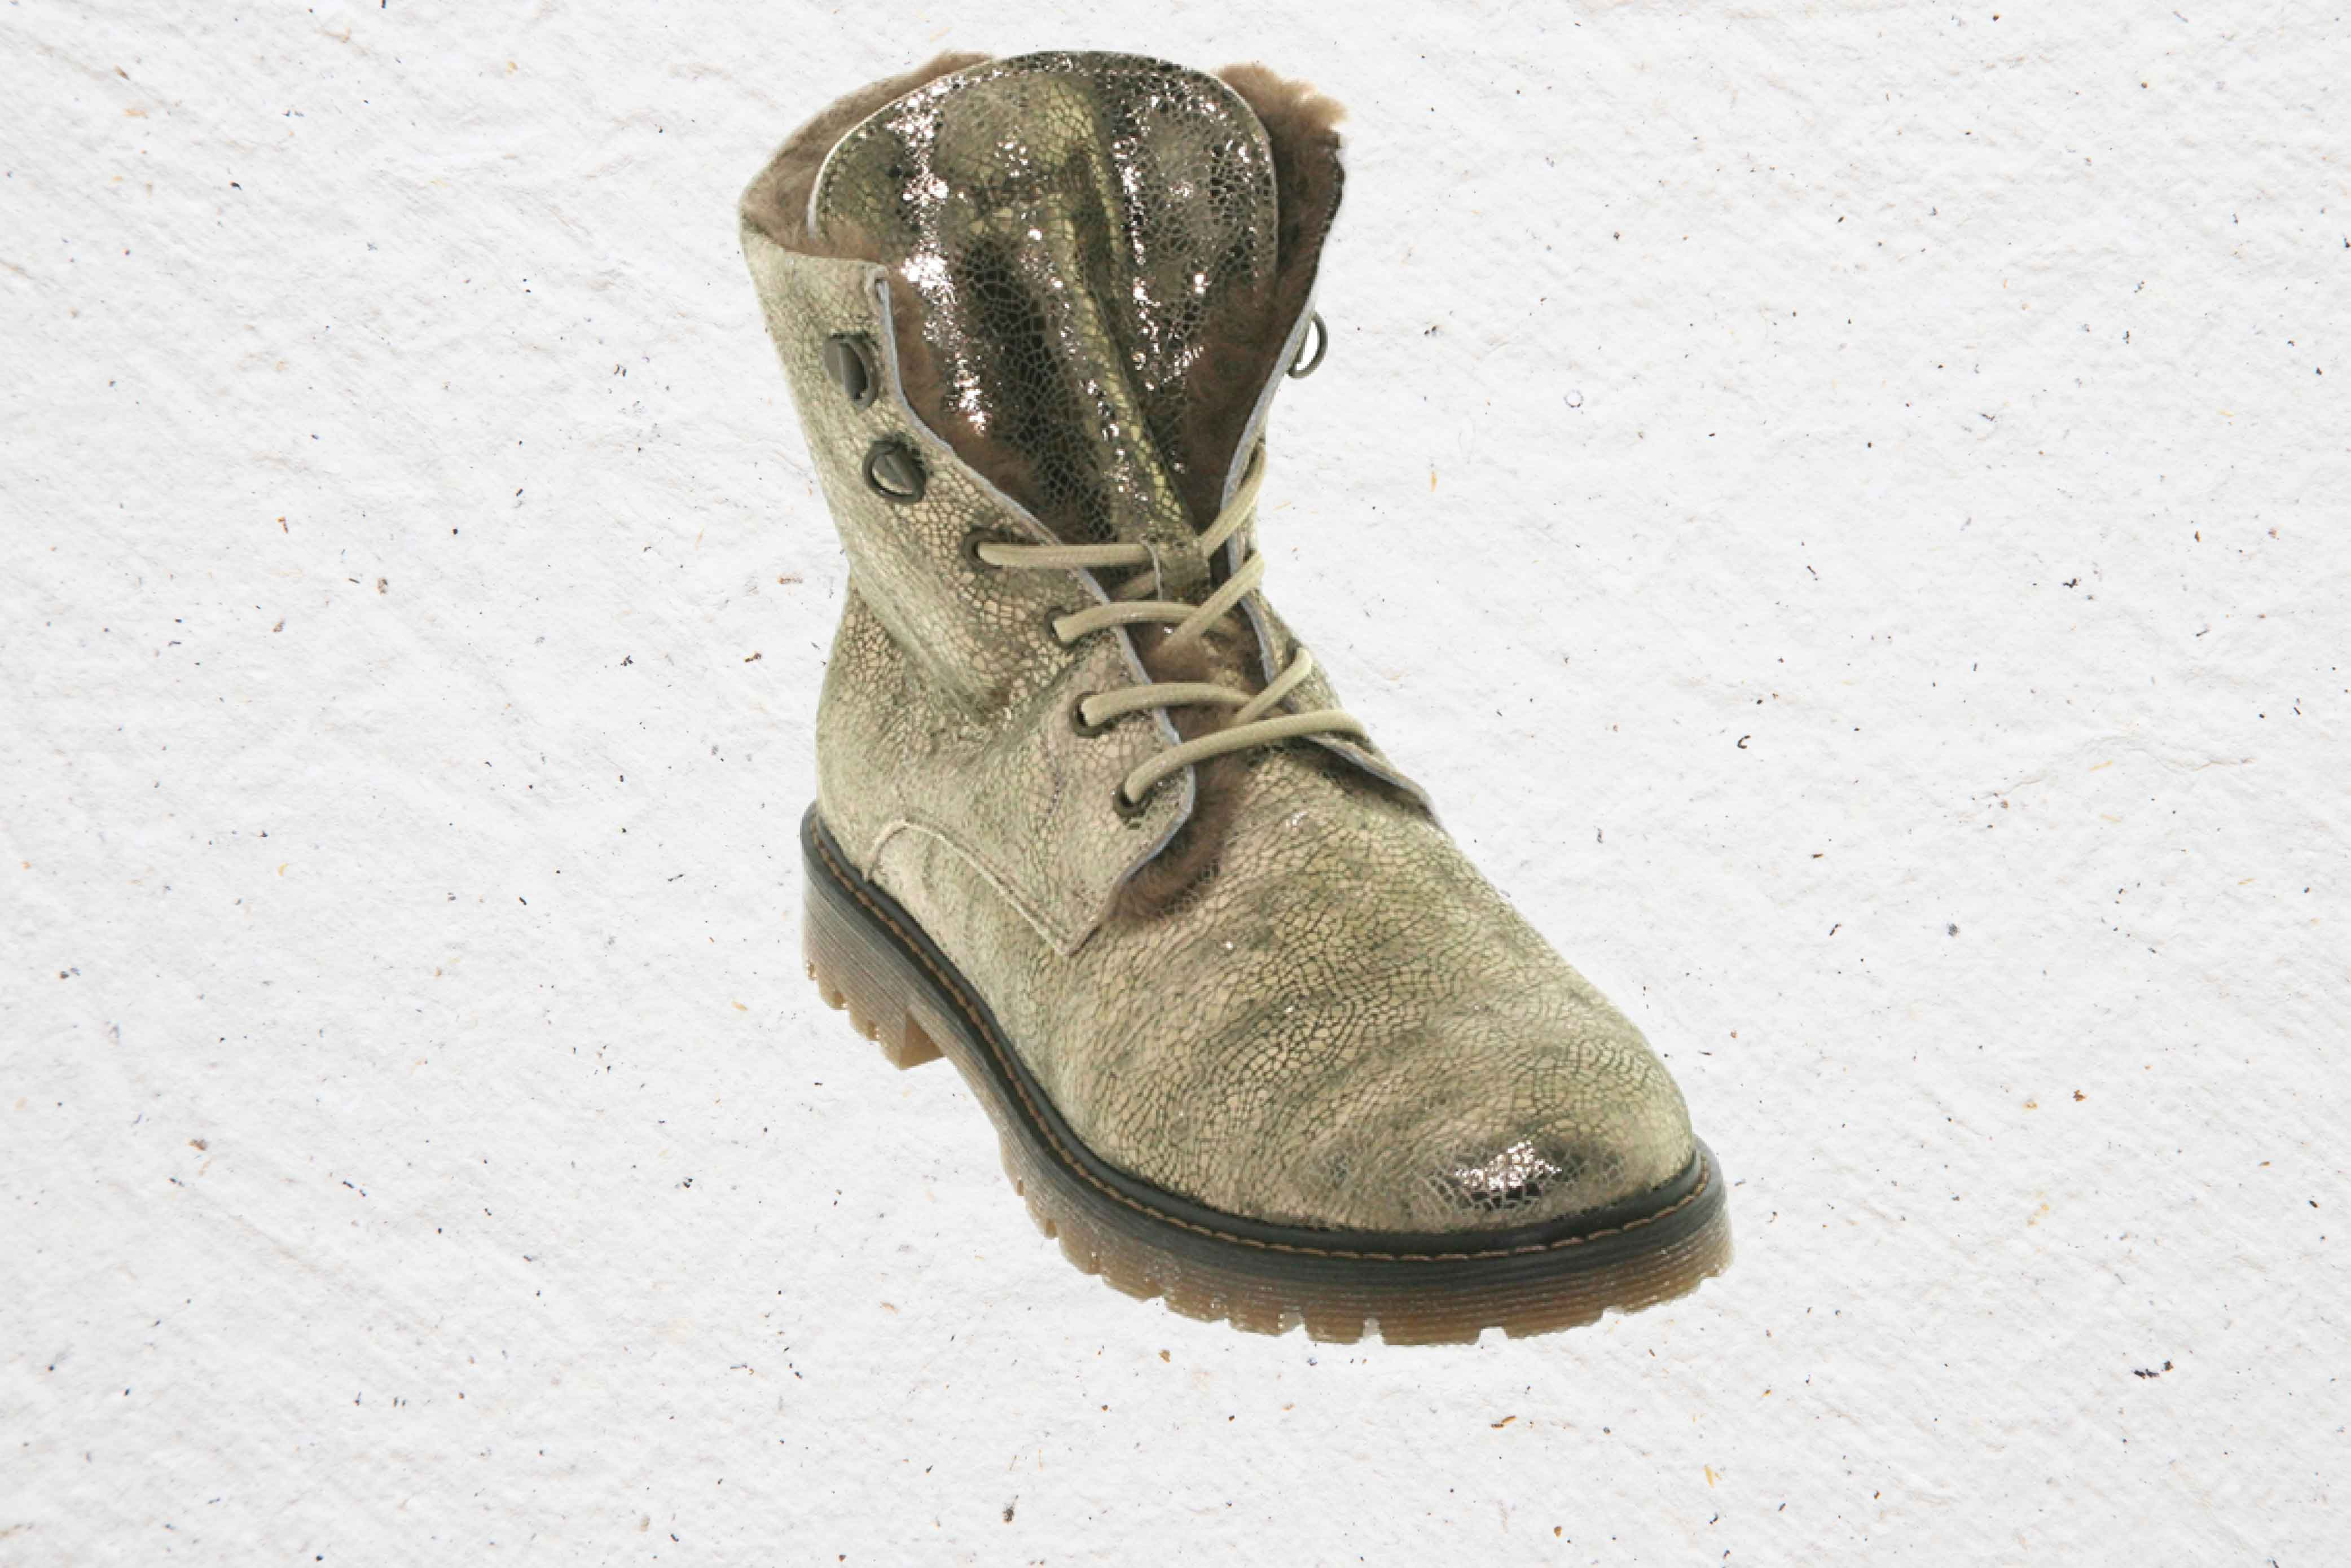 Stiefel/Boots